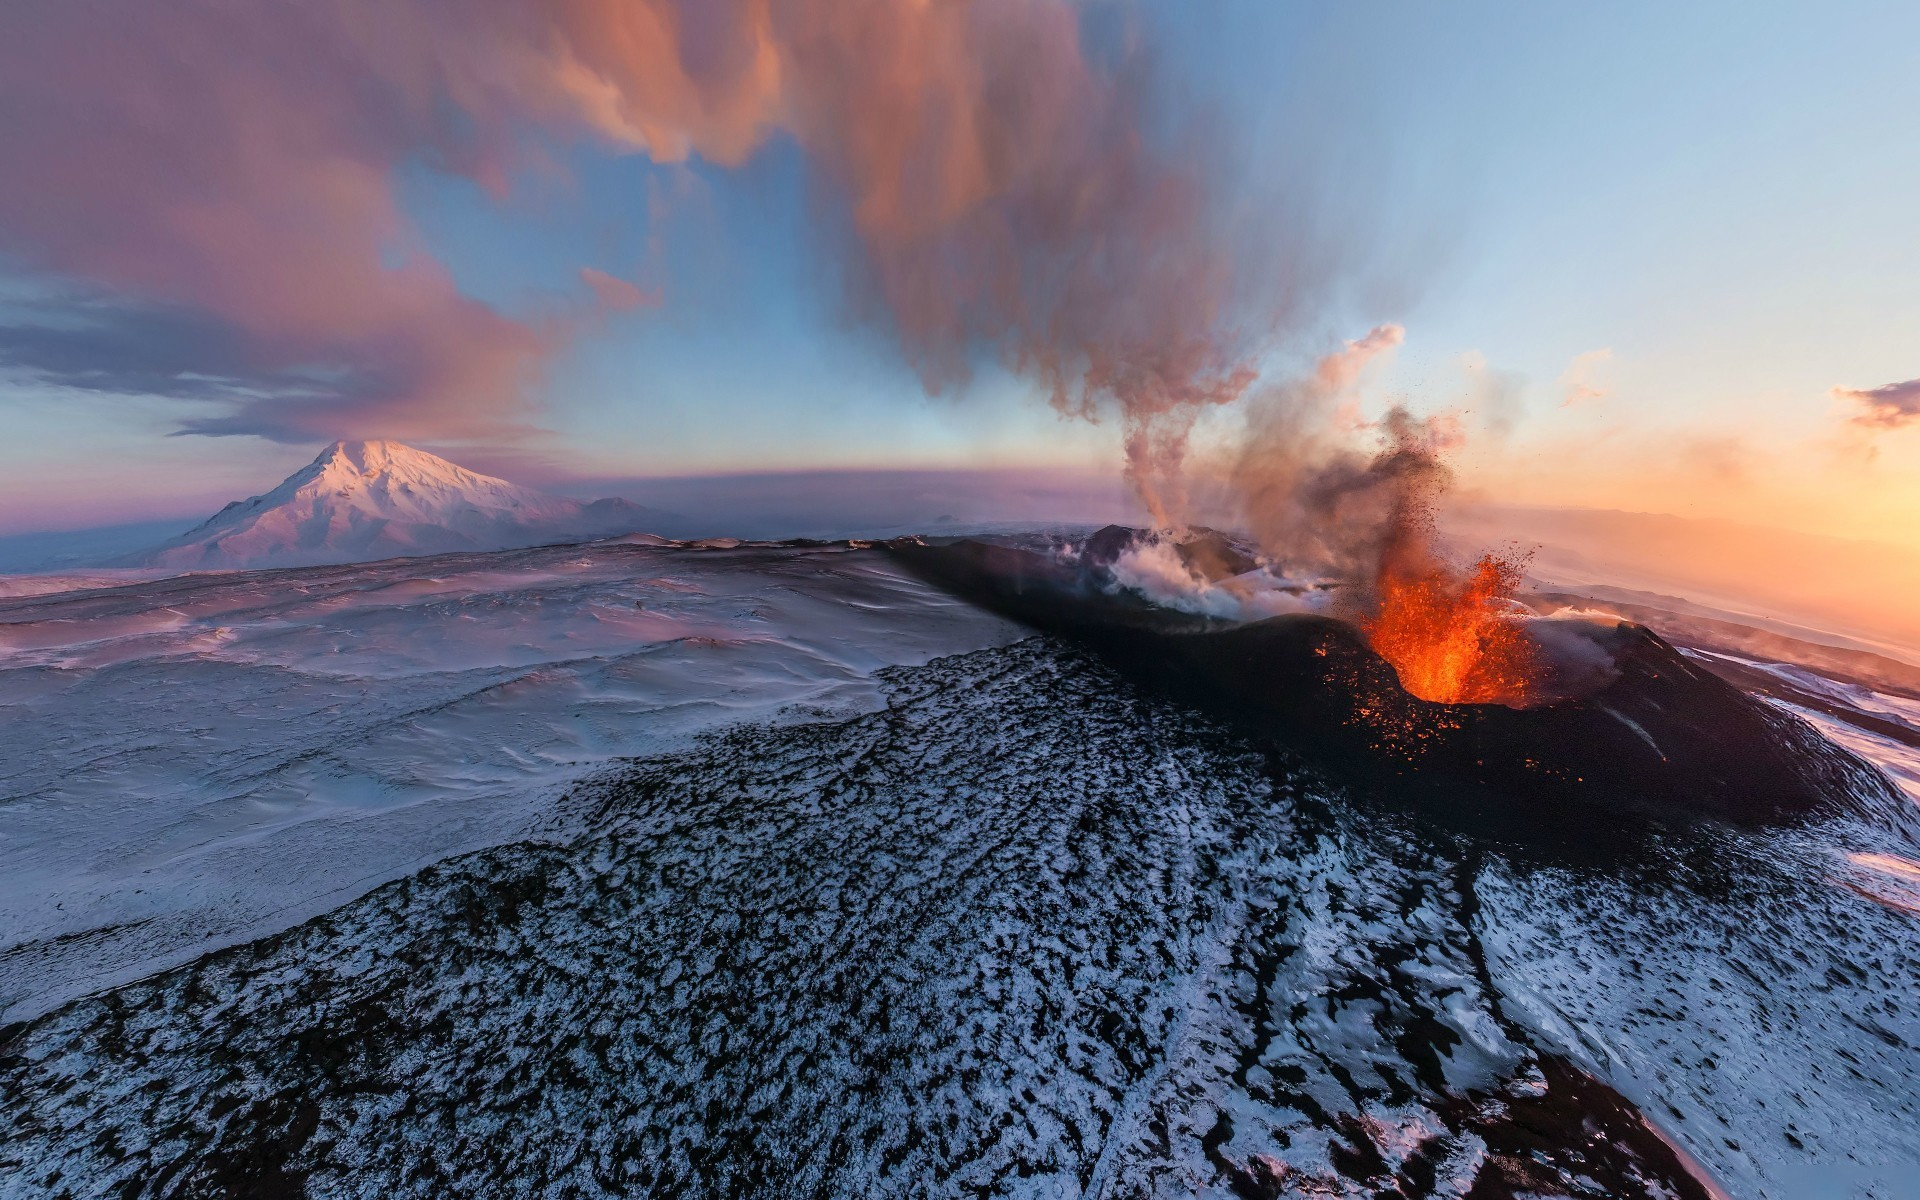 Cool Volcanoes Erupting Lava. Snow Mountain Landscape Hd Cool 7 HD  Wallpapers